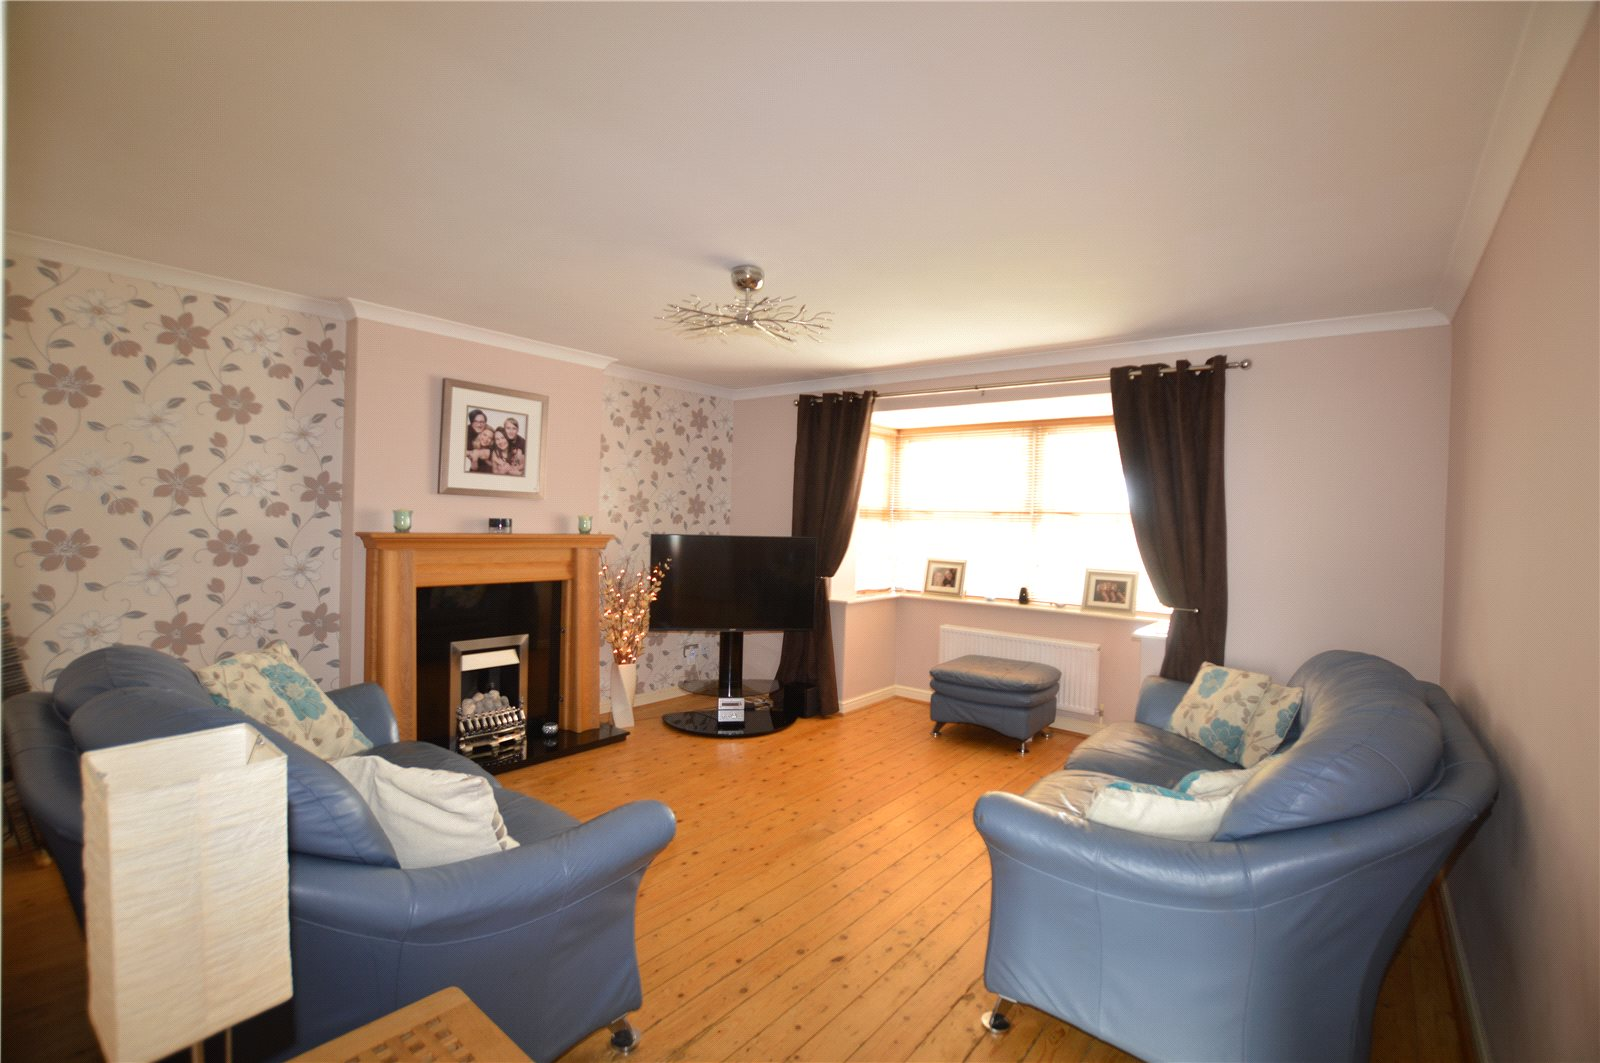 Property for sale in Morley, living area, blue sofas and printed wallpaper